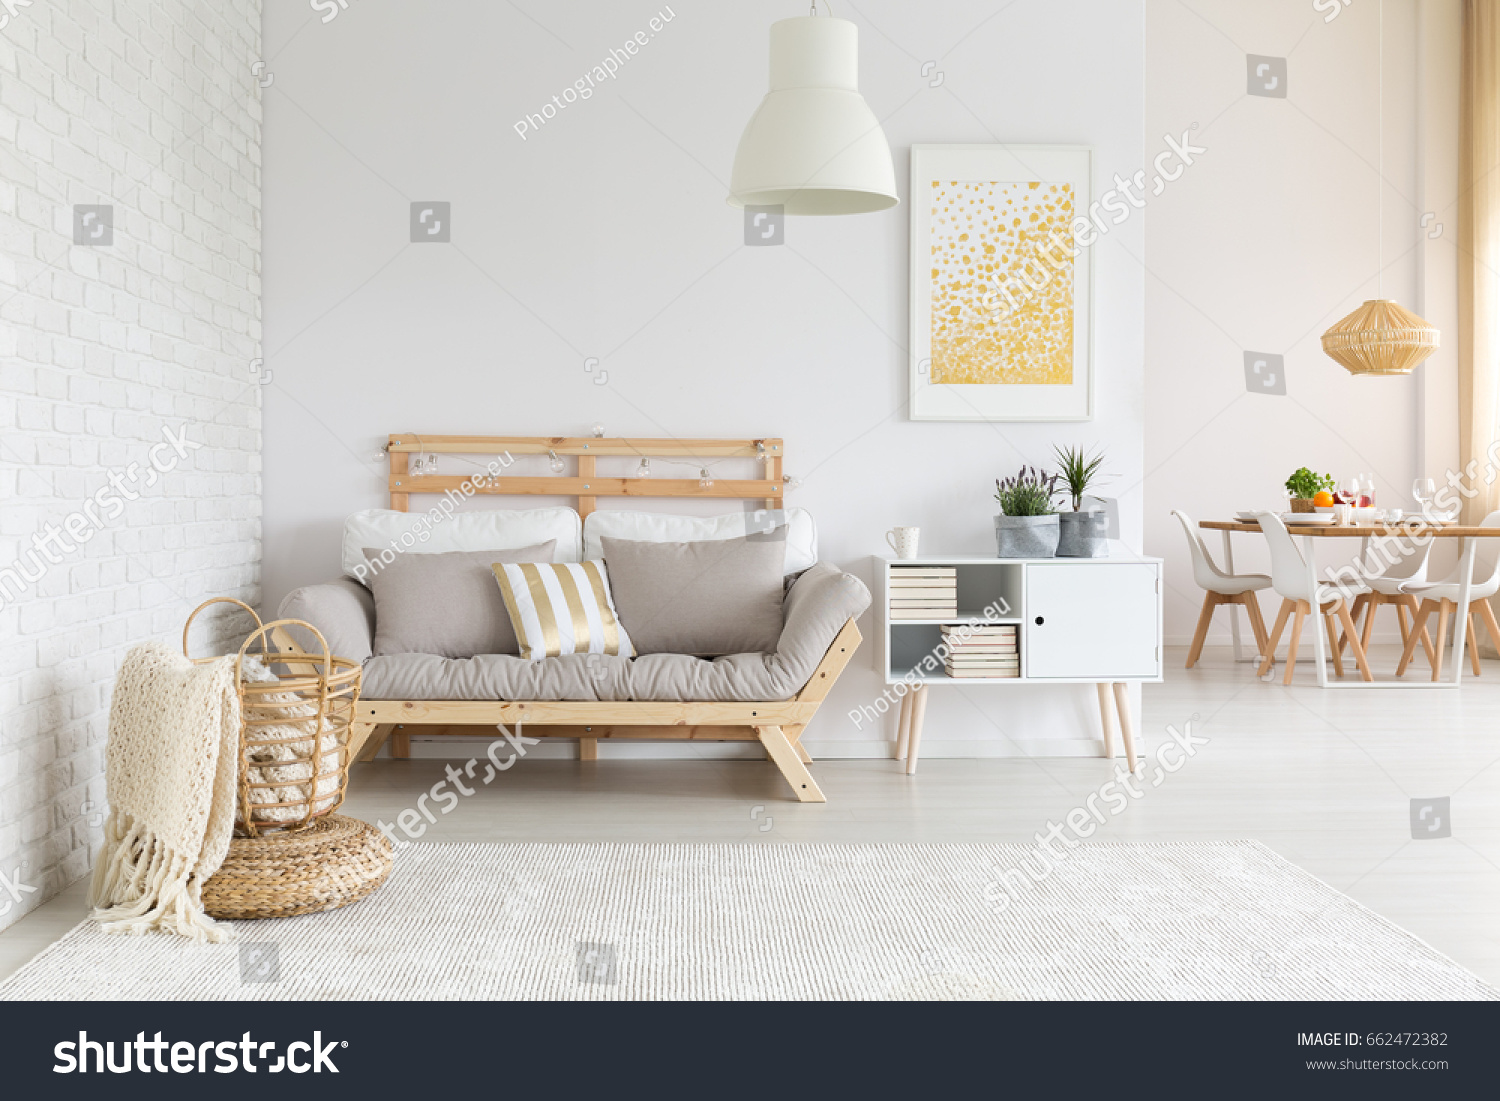 White, Beige And Gold Furniture And Decorations In Living Room Part 73